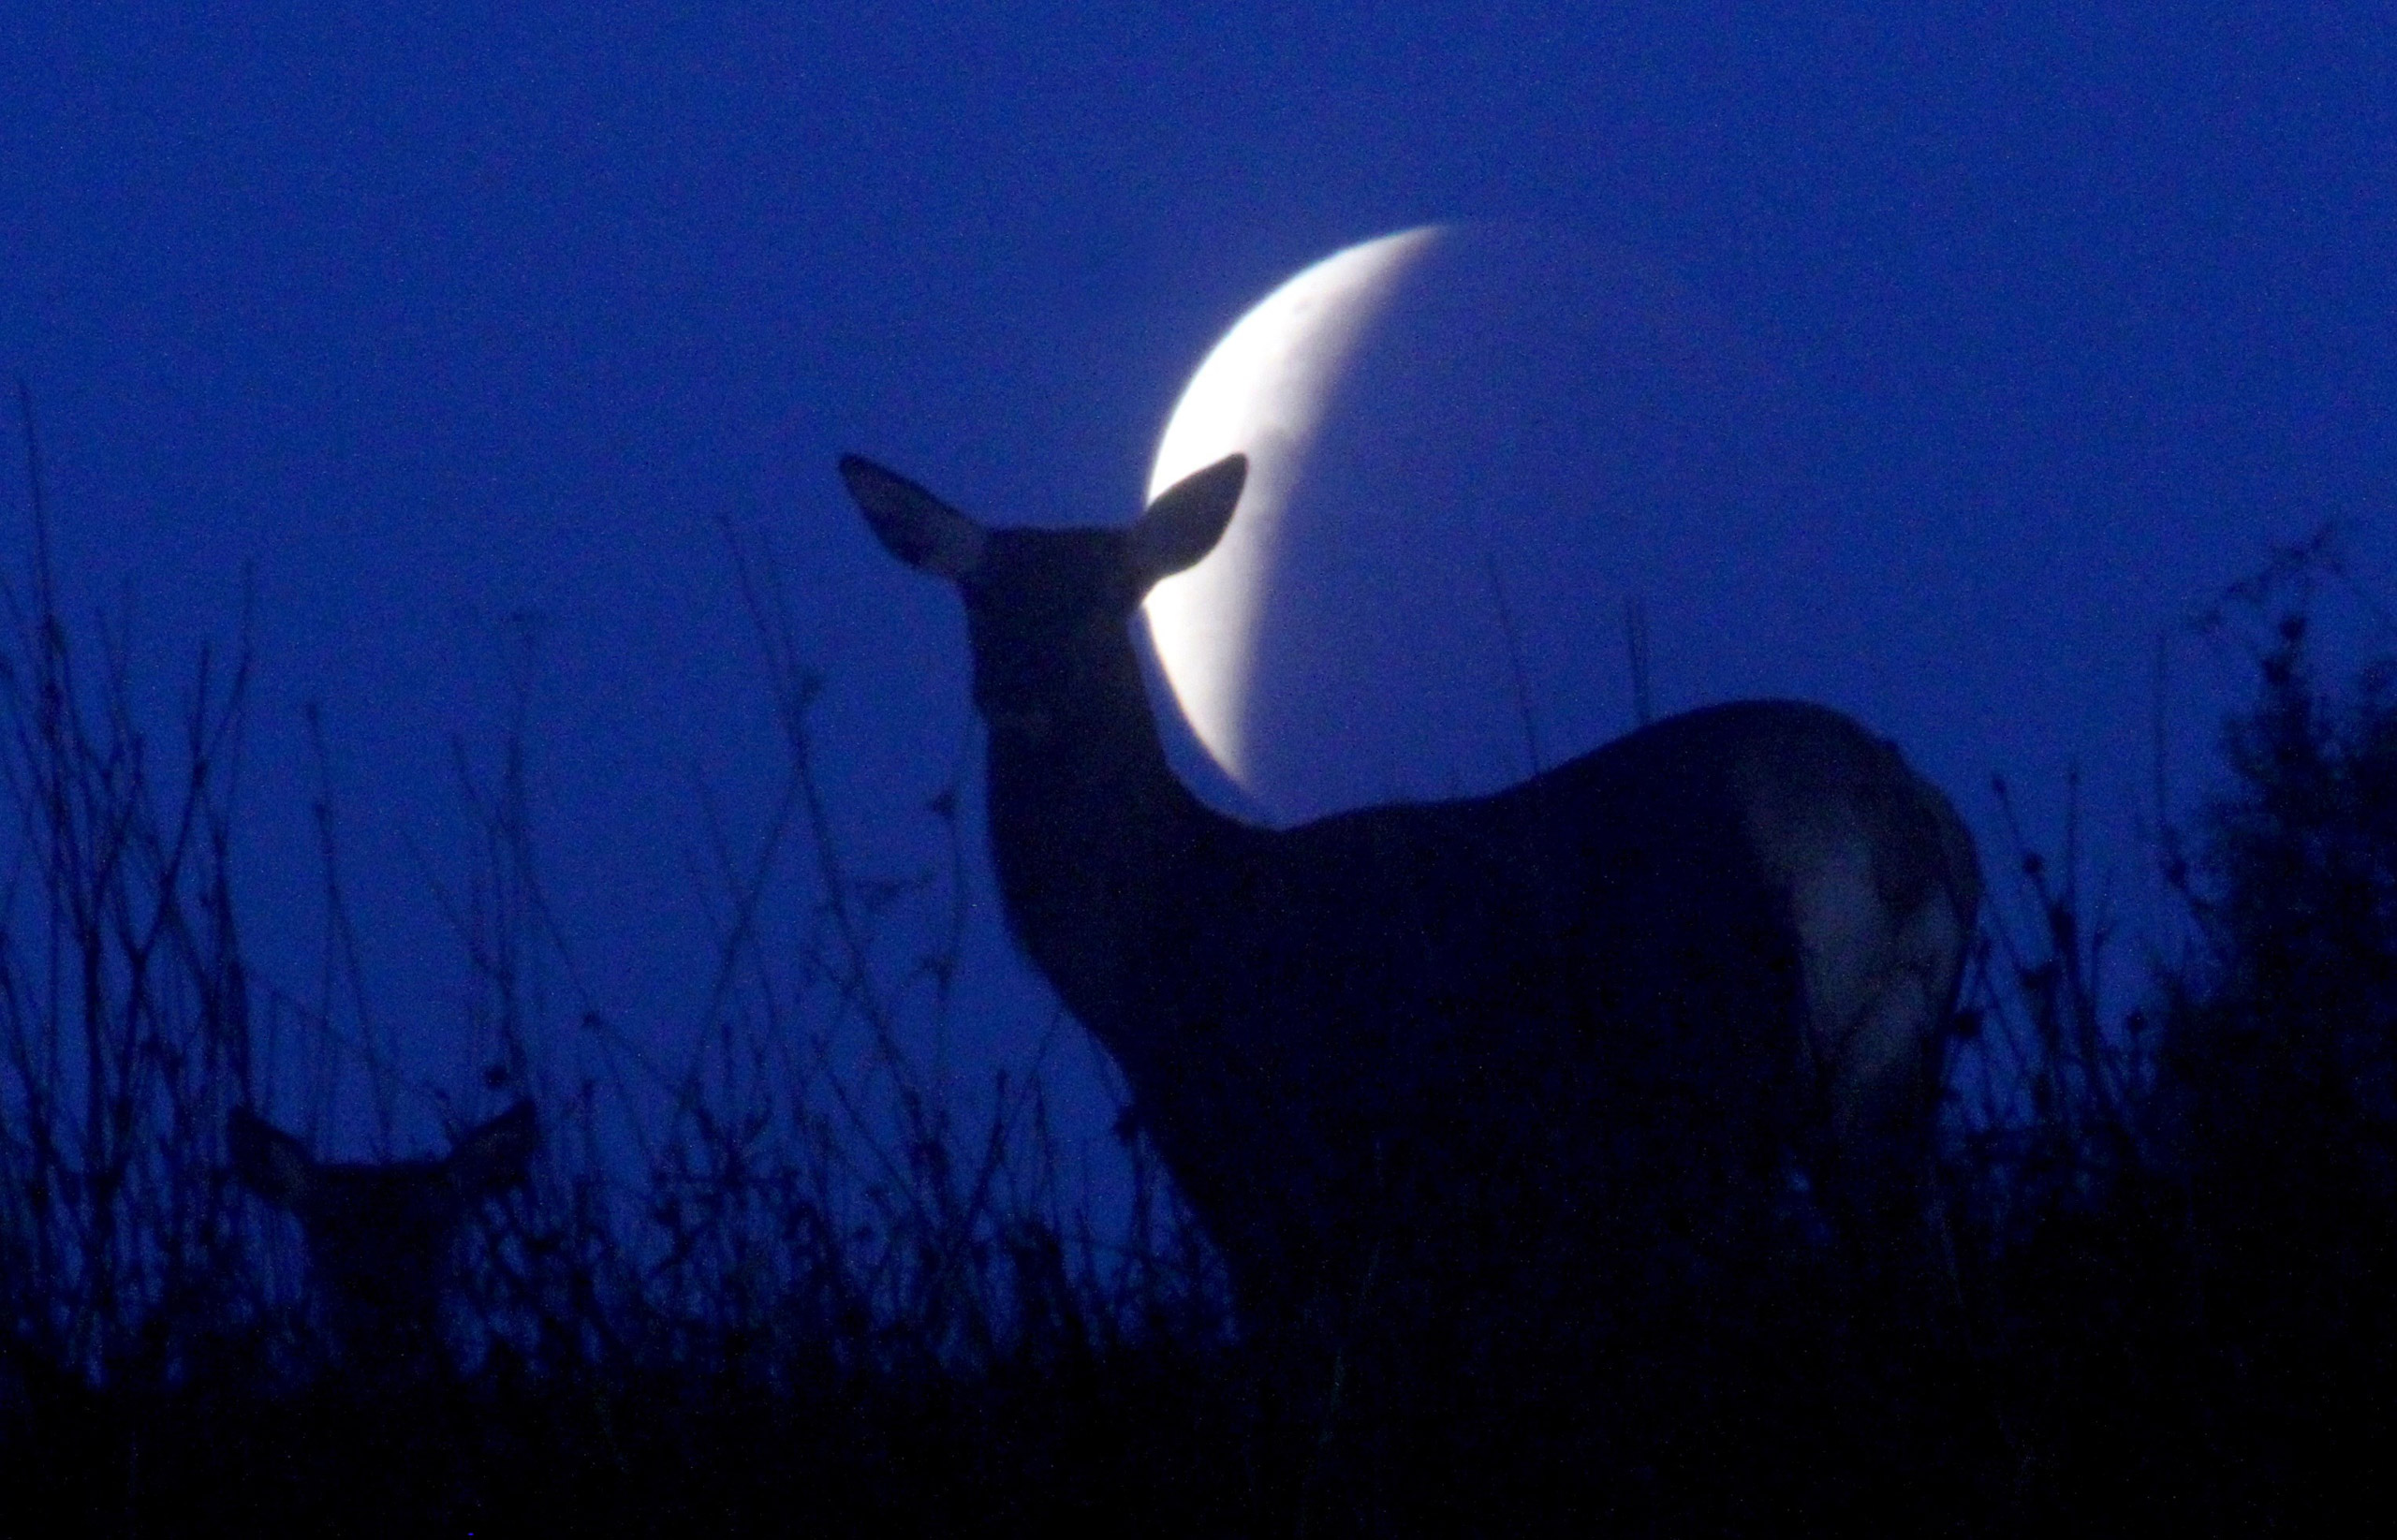 Reindeer are seen silhouetted against the supermoon during the lunar eclipse near the village of Yavterishki, some 250 kilometers north from Minsk on Sept. 28, 2015.